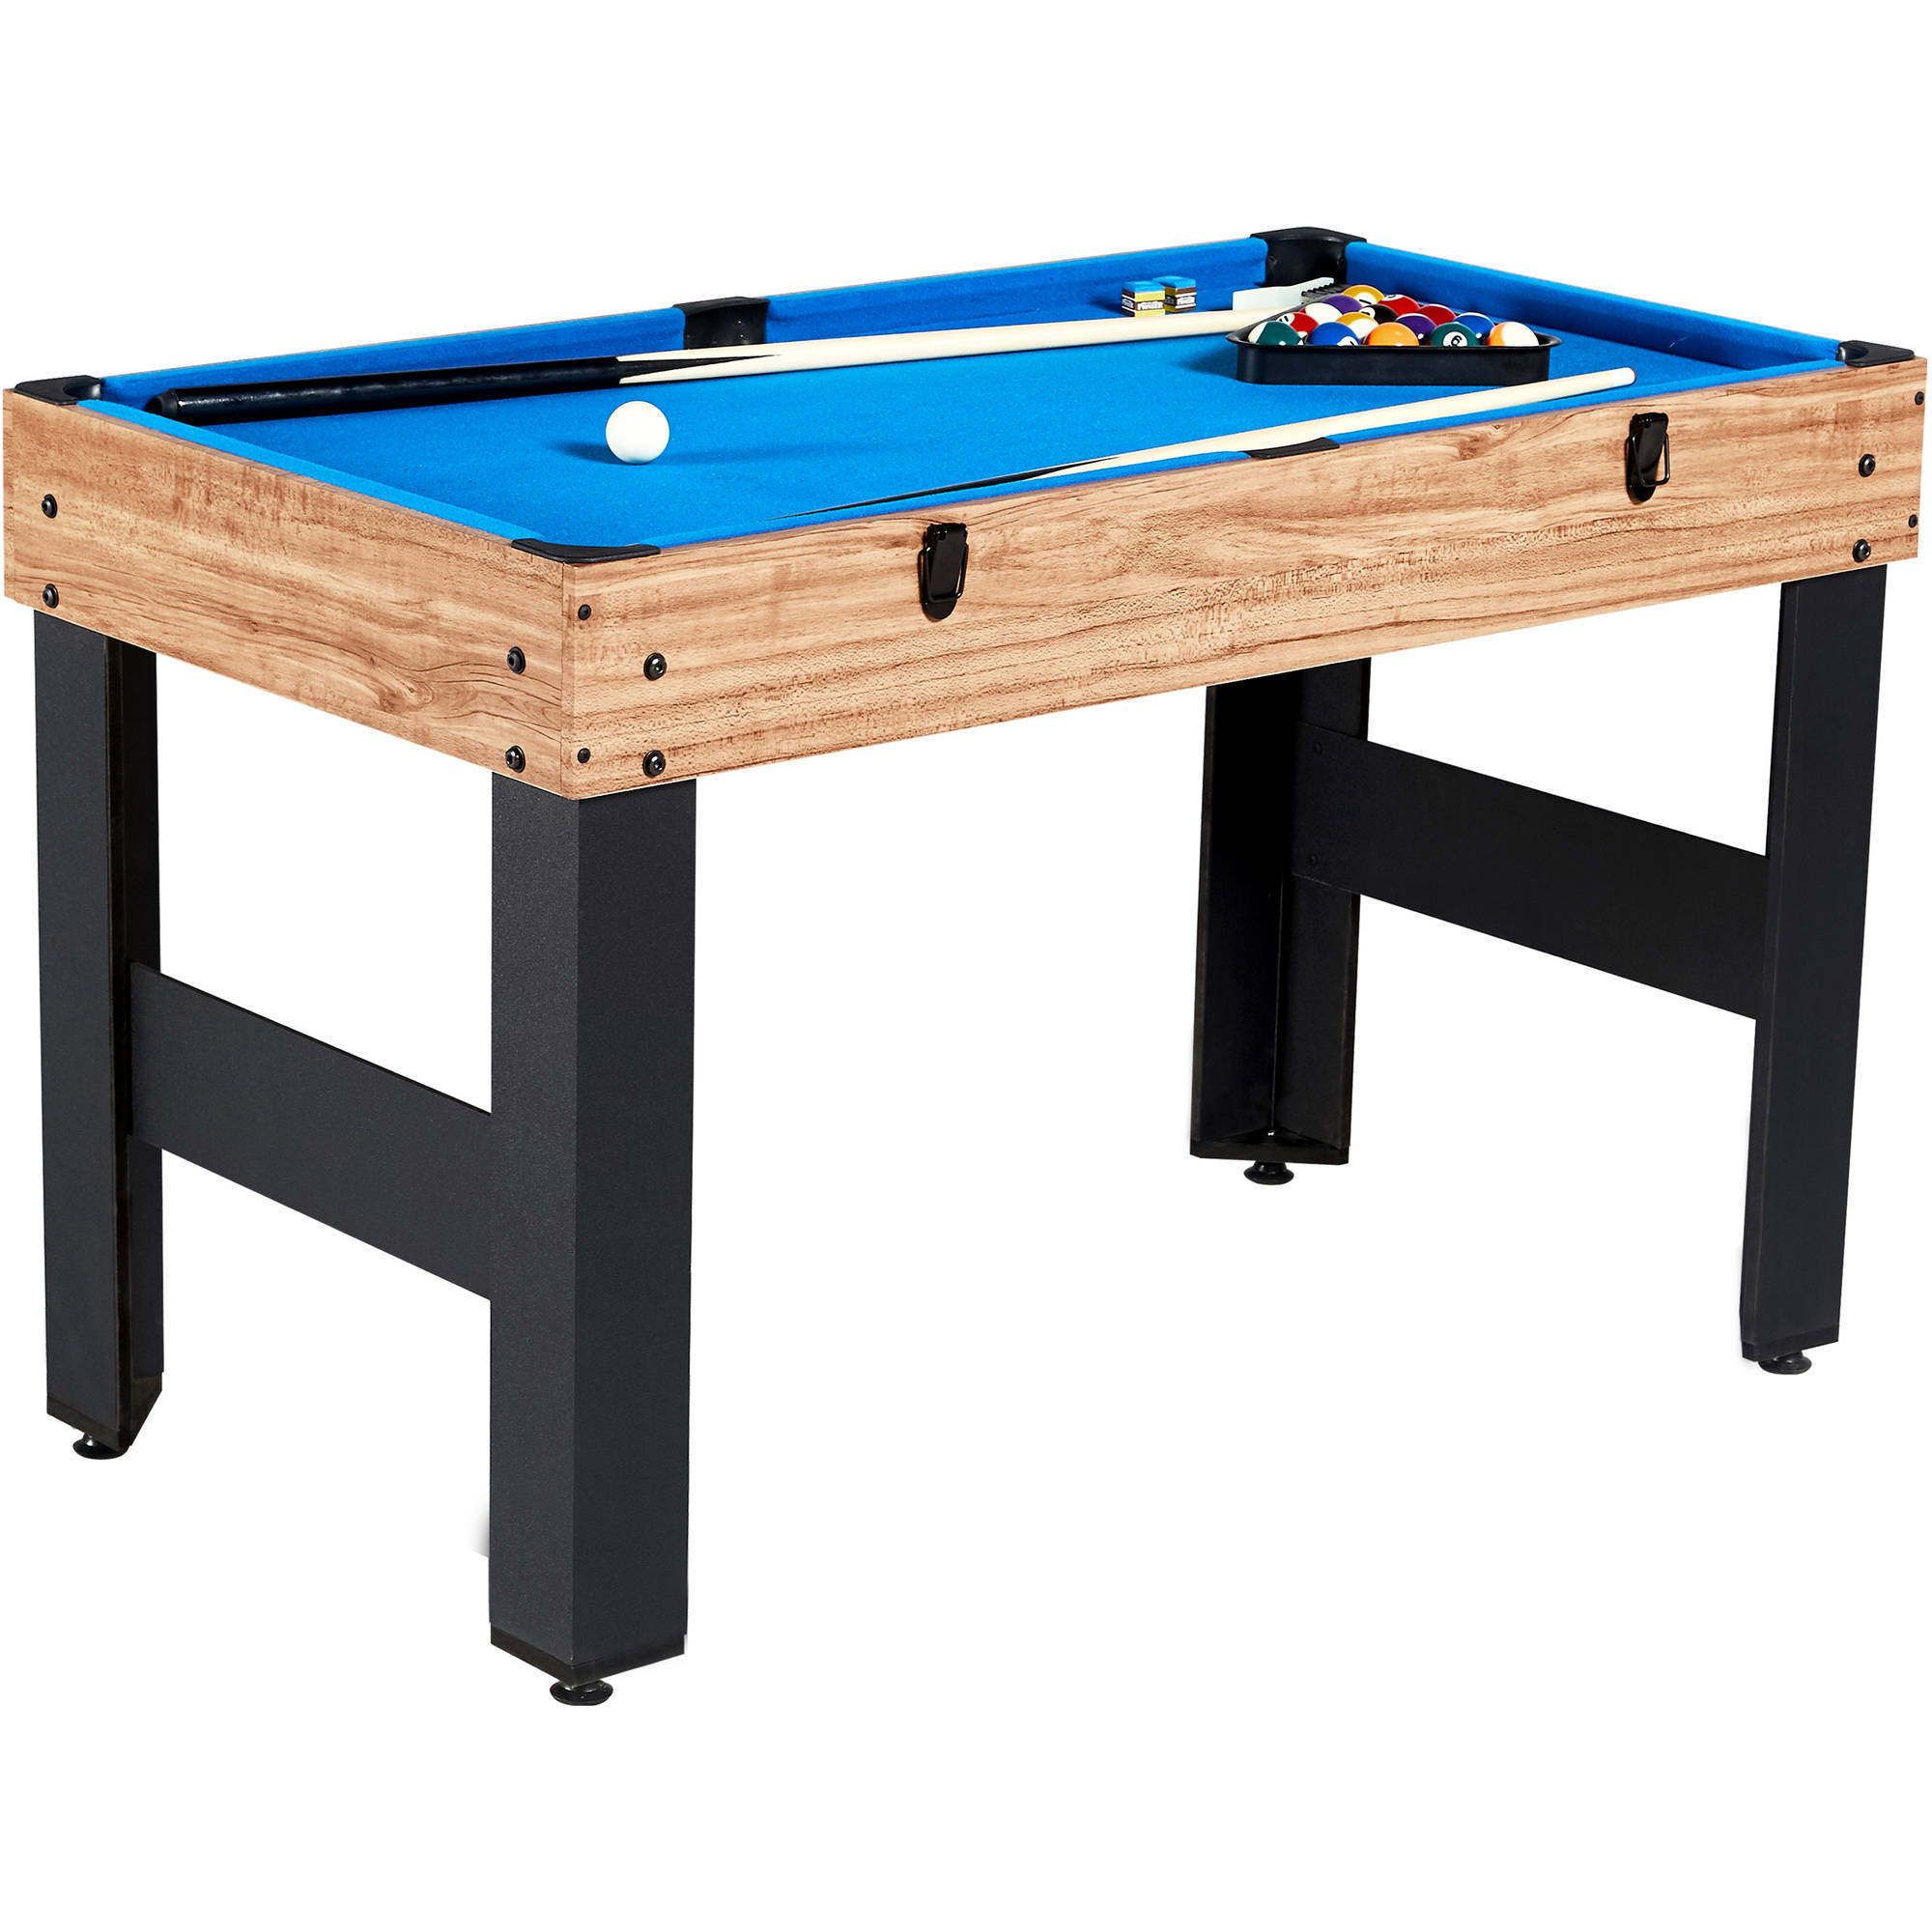 48 Inch 3 In 1 Combo Game Table 3 Games With Billiards Hockey And Foosball  NEW